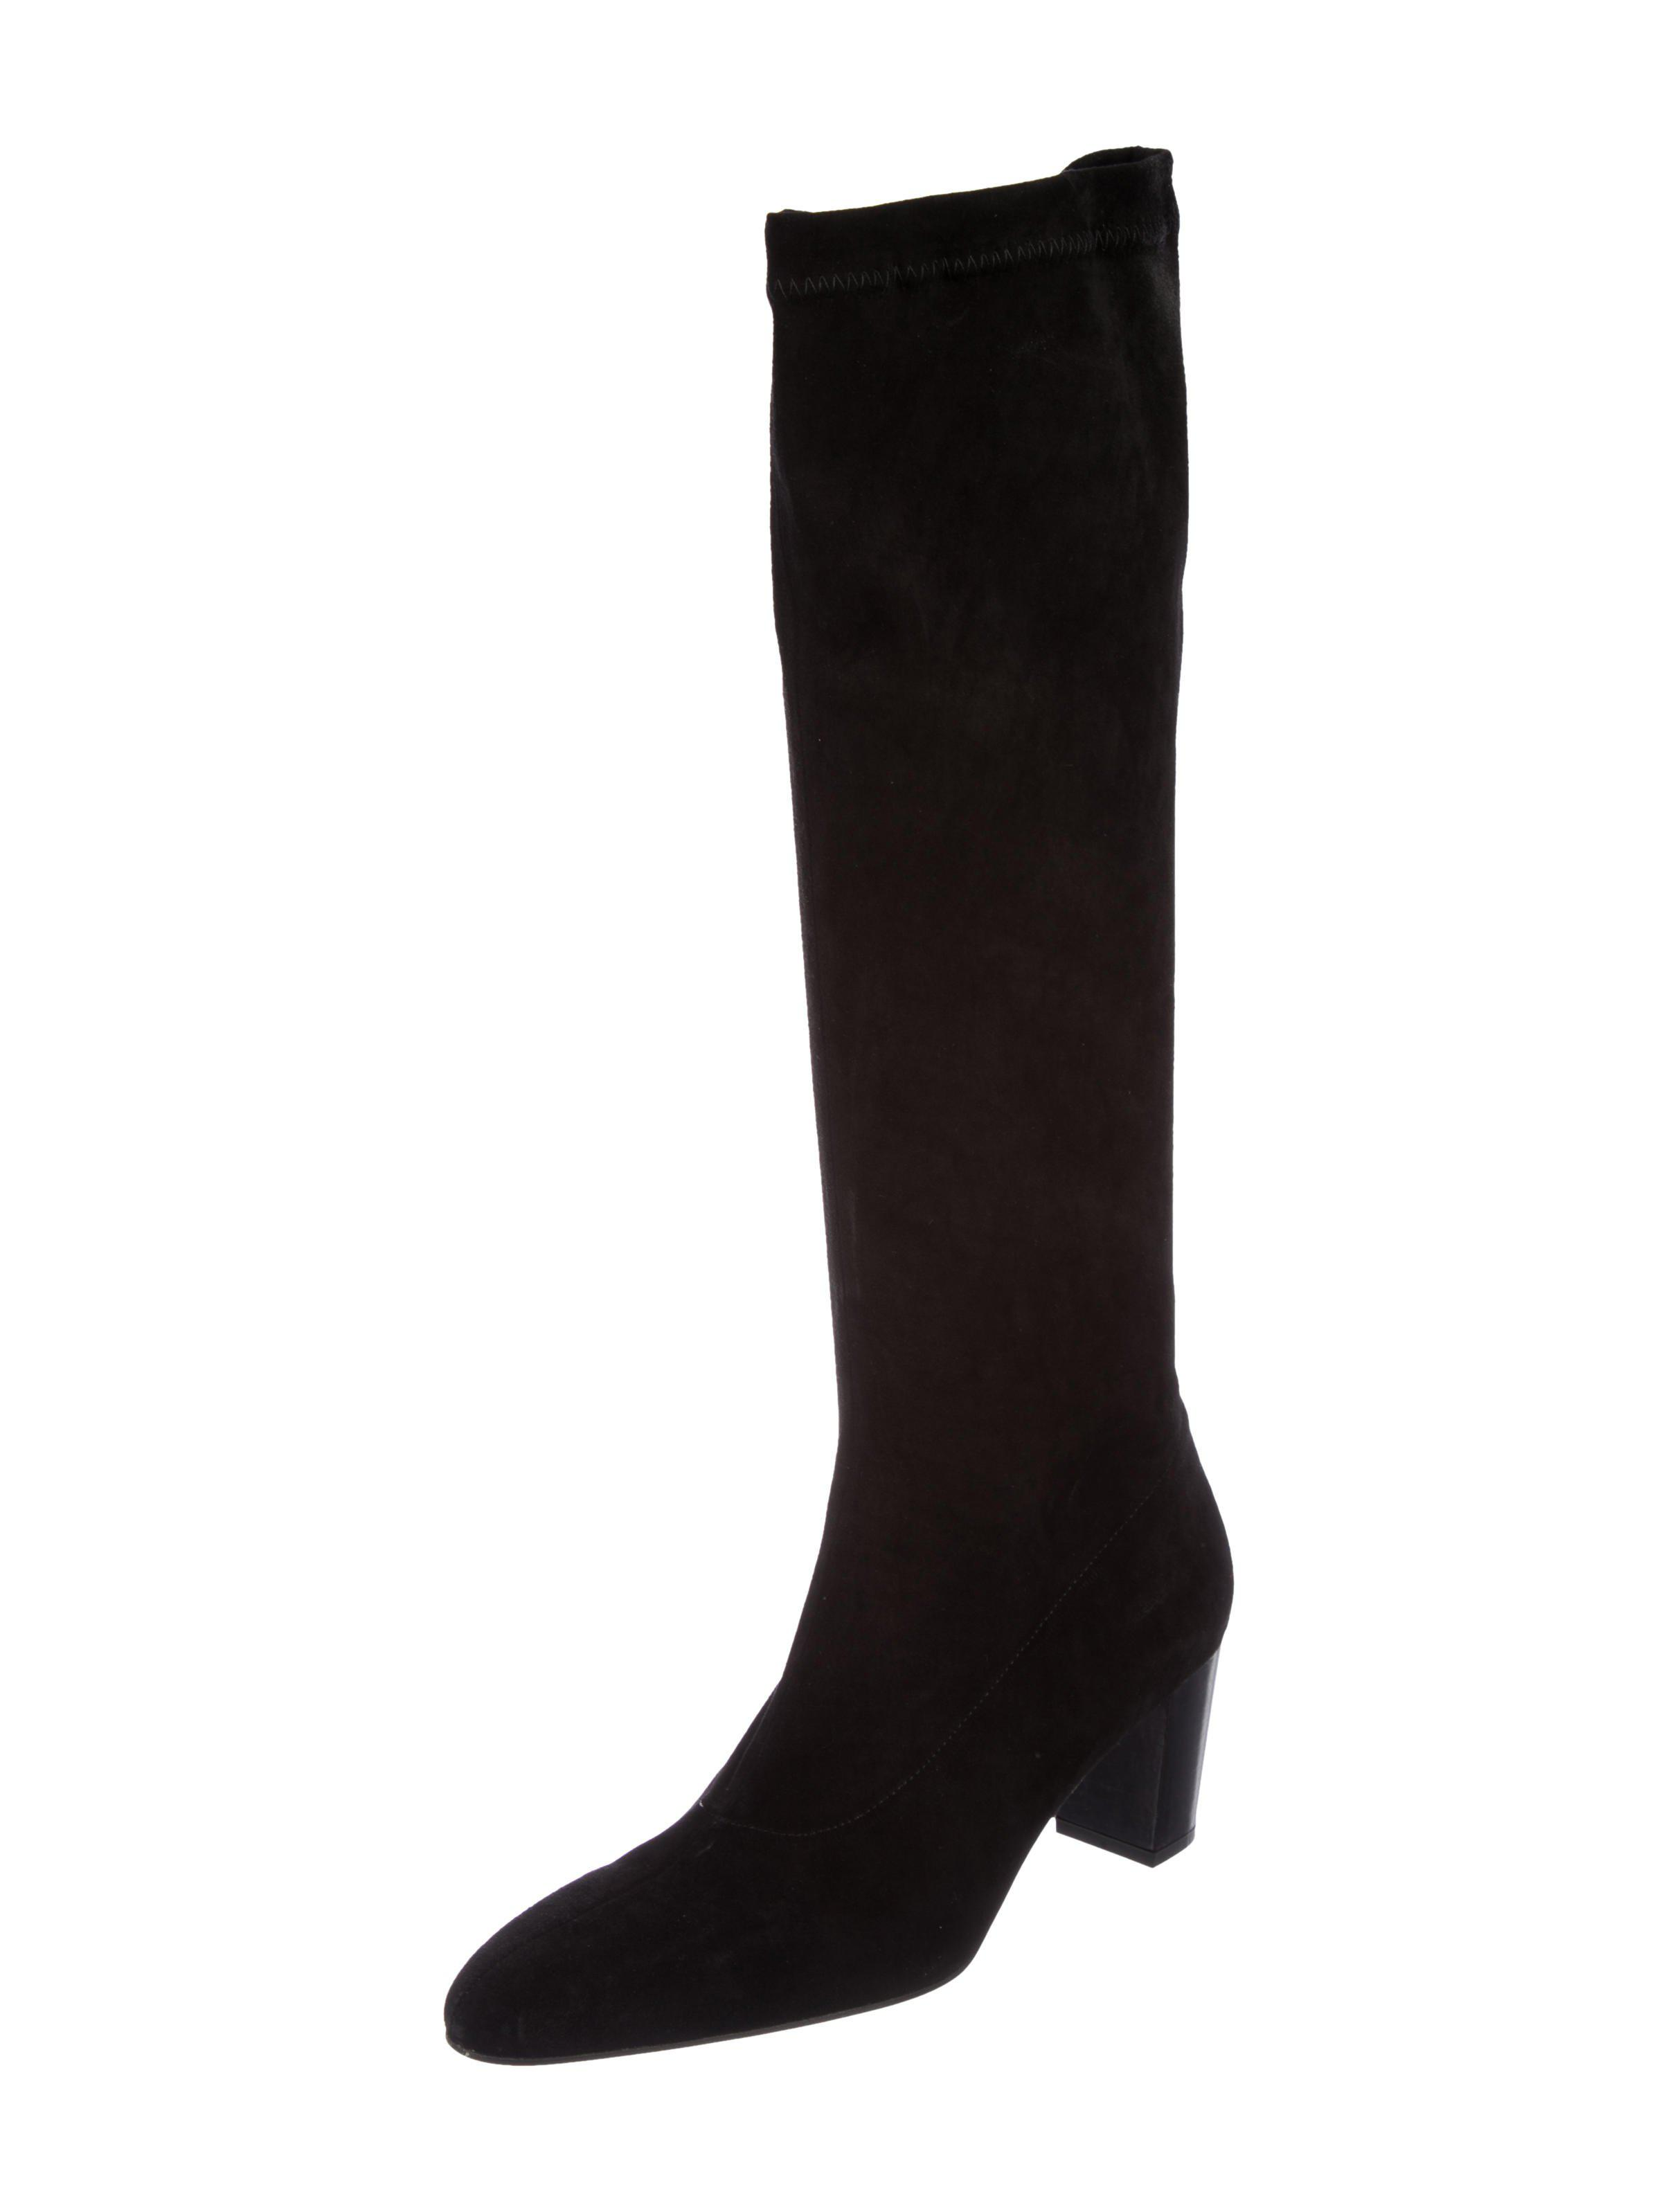 buy cheap get authentic Roger Vivier Distel Knee-High Boots w/ Tags extremely sale online clearance purchase F9Rx2